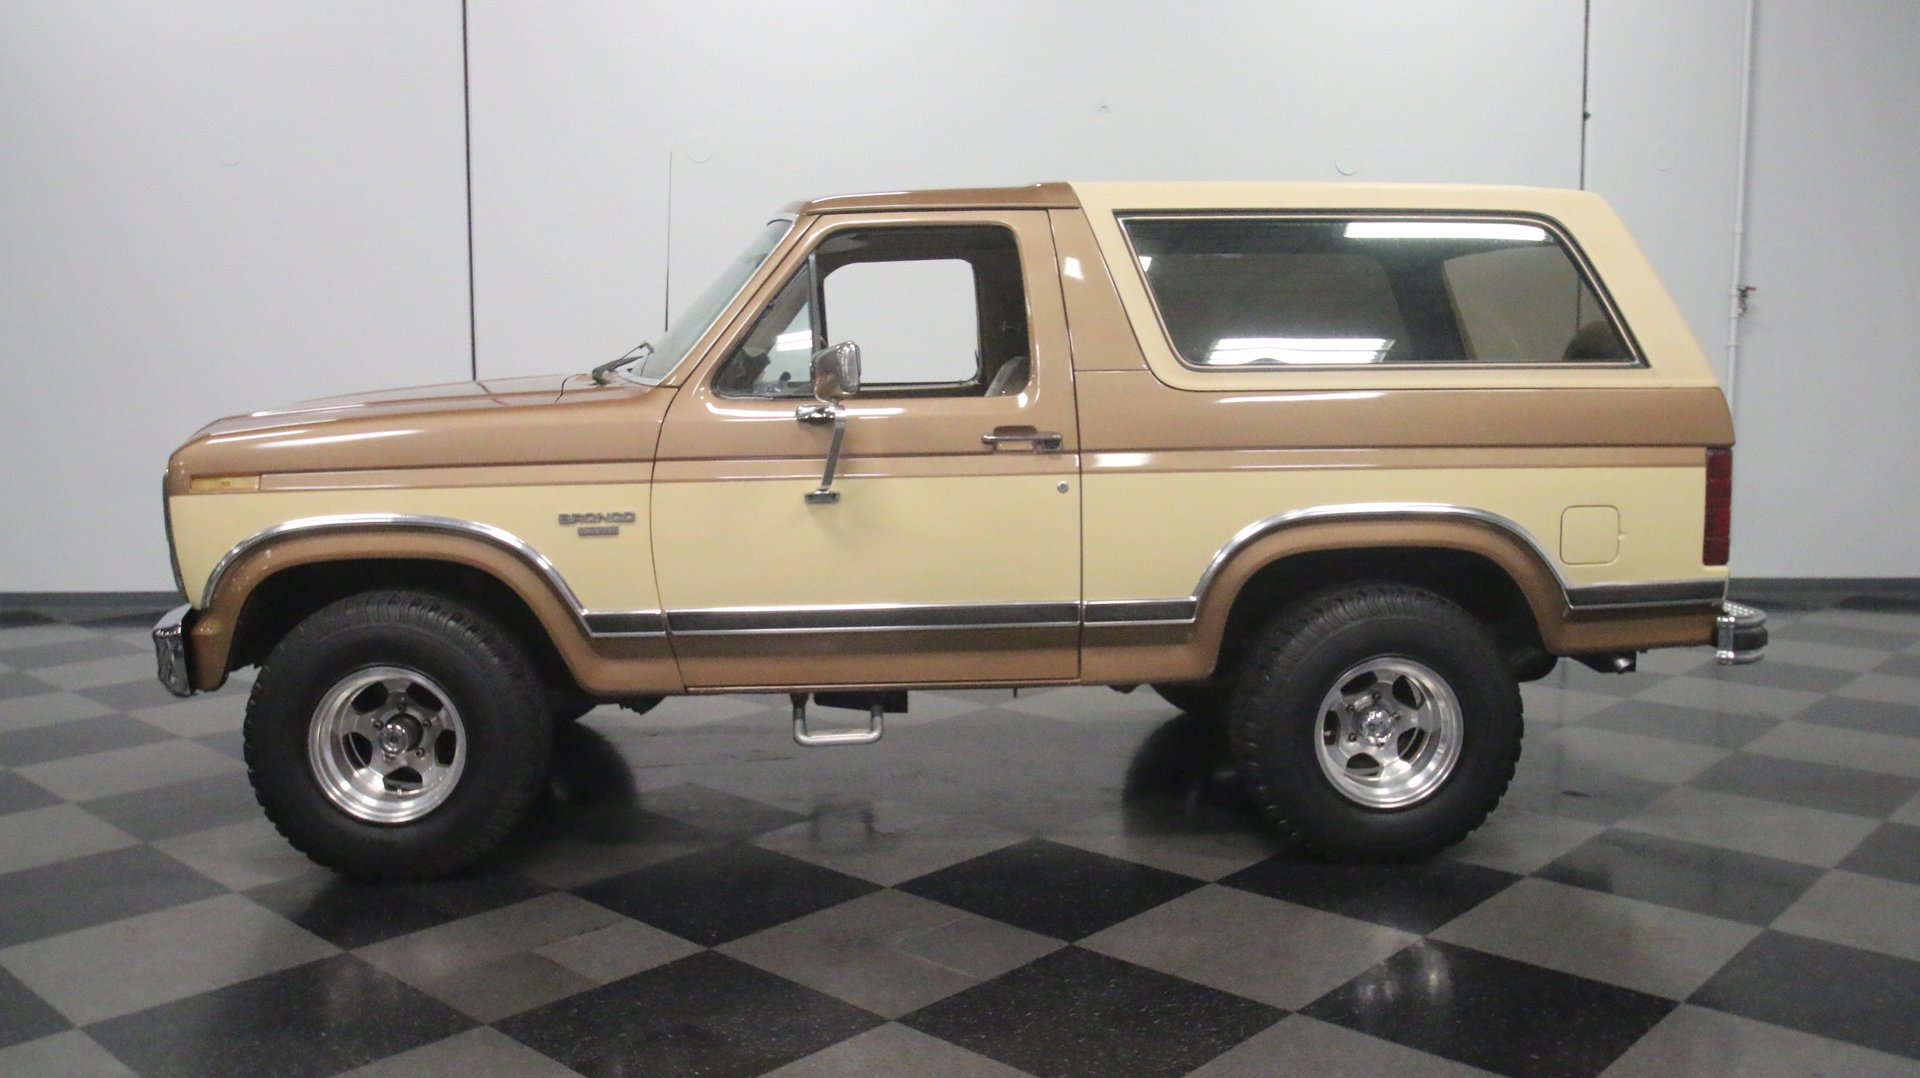 1985 Ford Bronco Classic Cars For Sale Streetside Classics The Nation S 1 Consignment Dealer